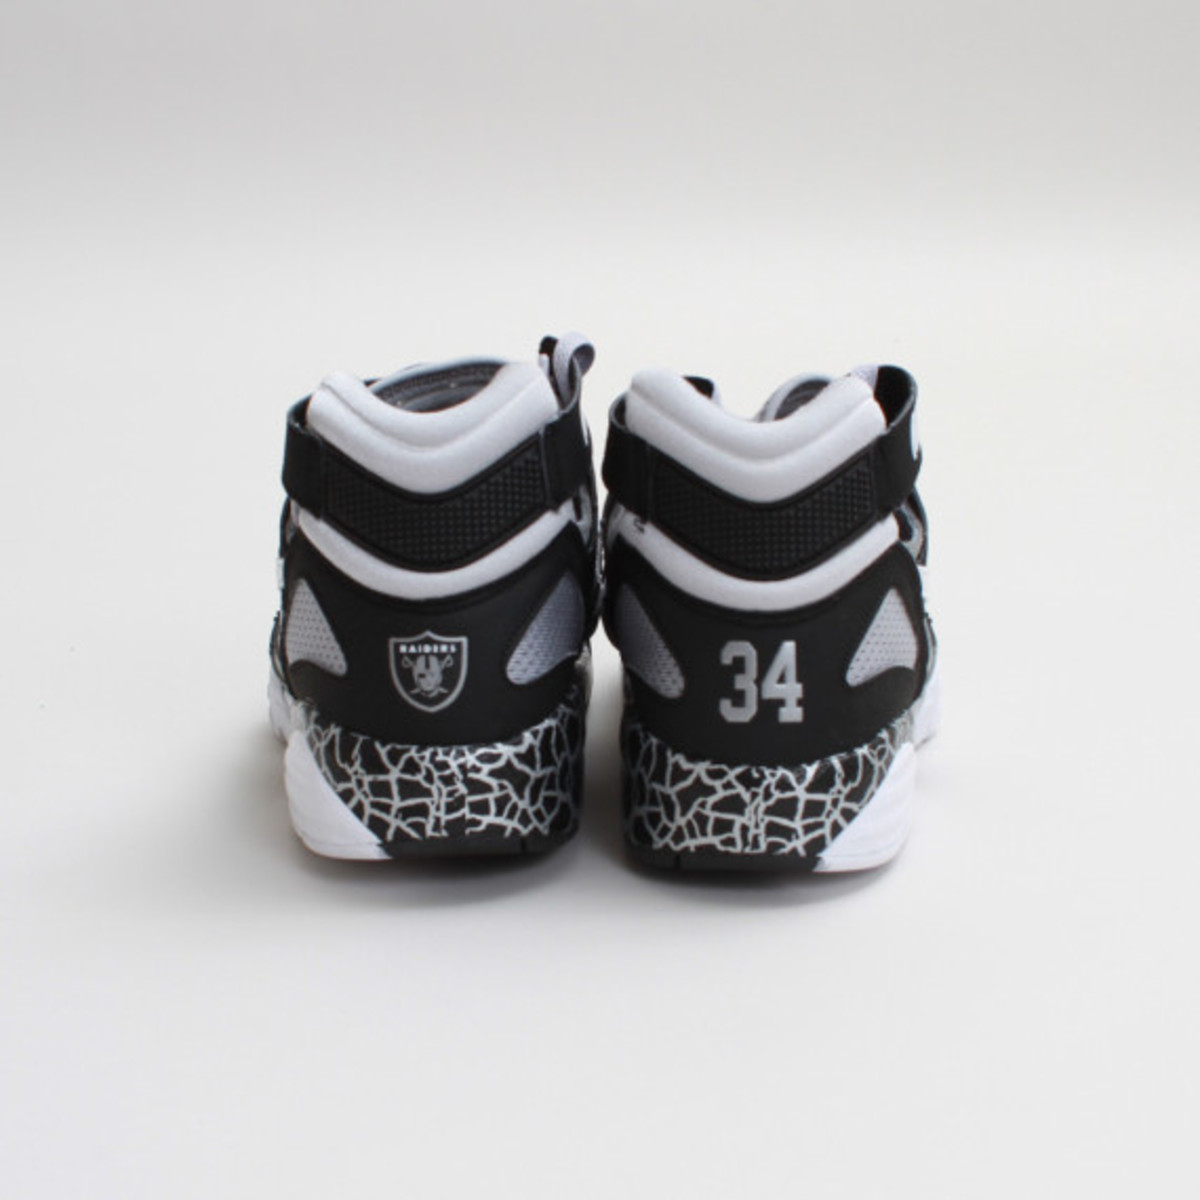 nike-air-trainer-max-91-bo-knows-4